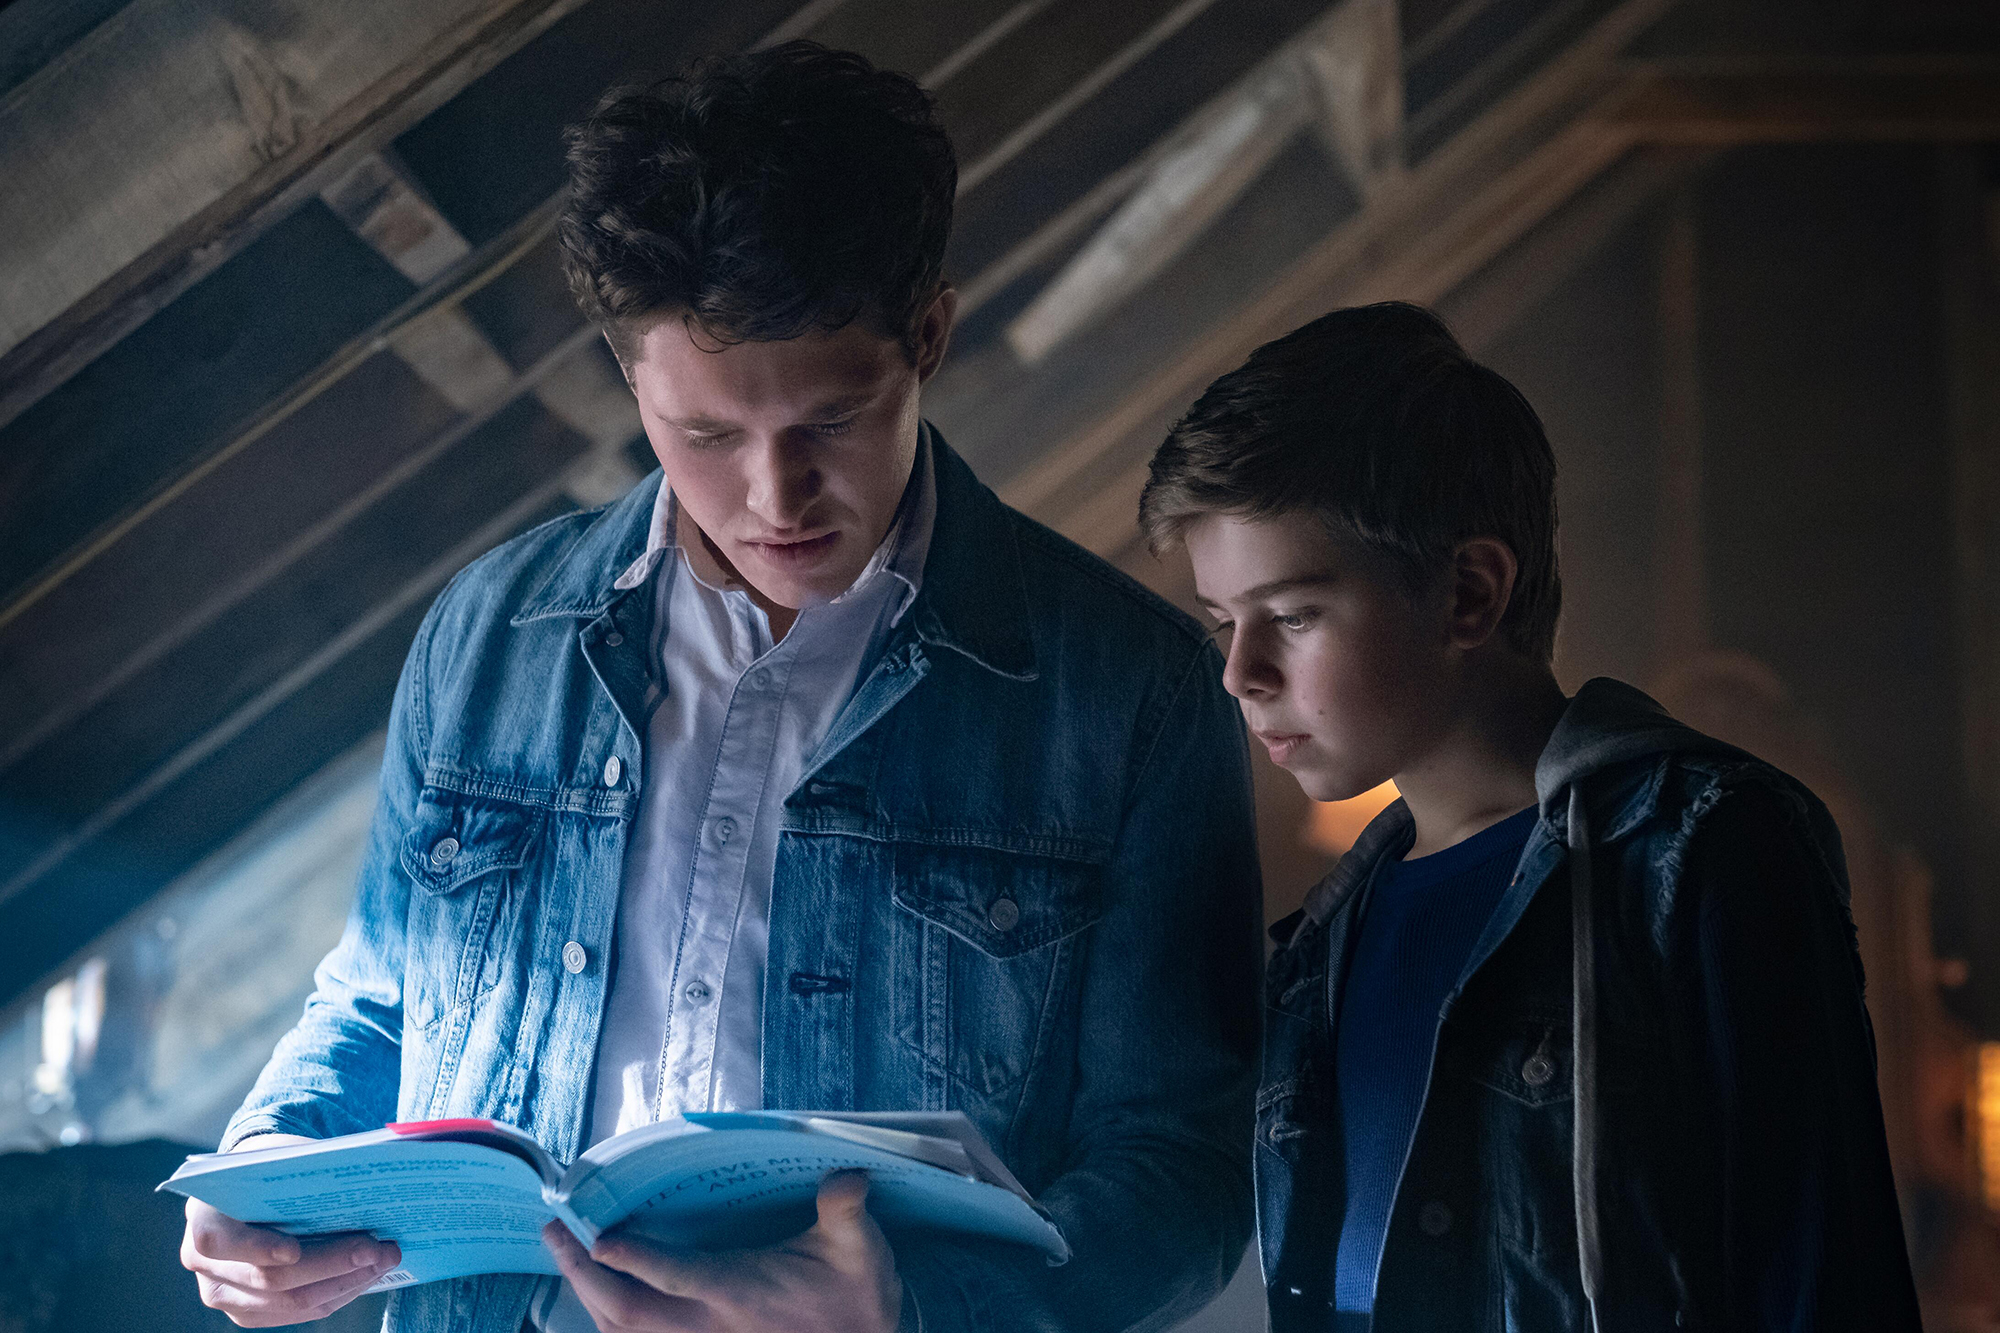 'The Hardy Boys' brings mystery, nostalgia to Hulu